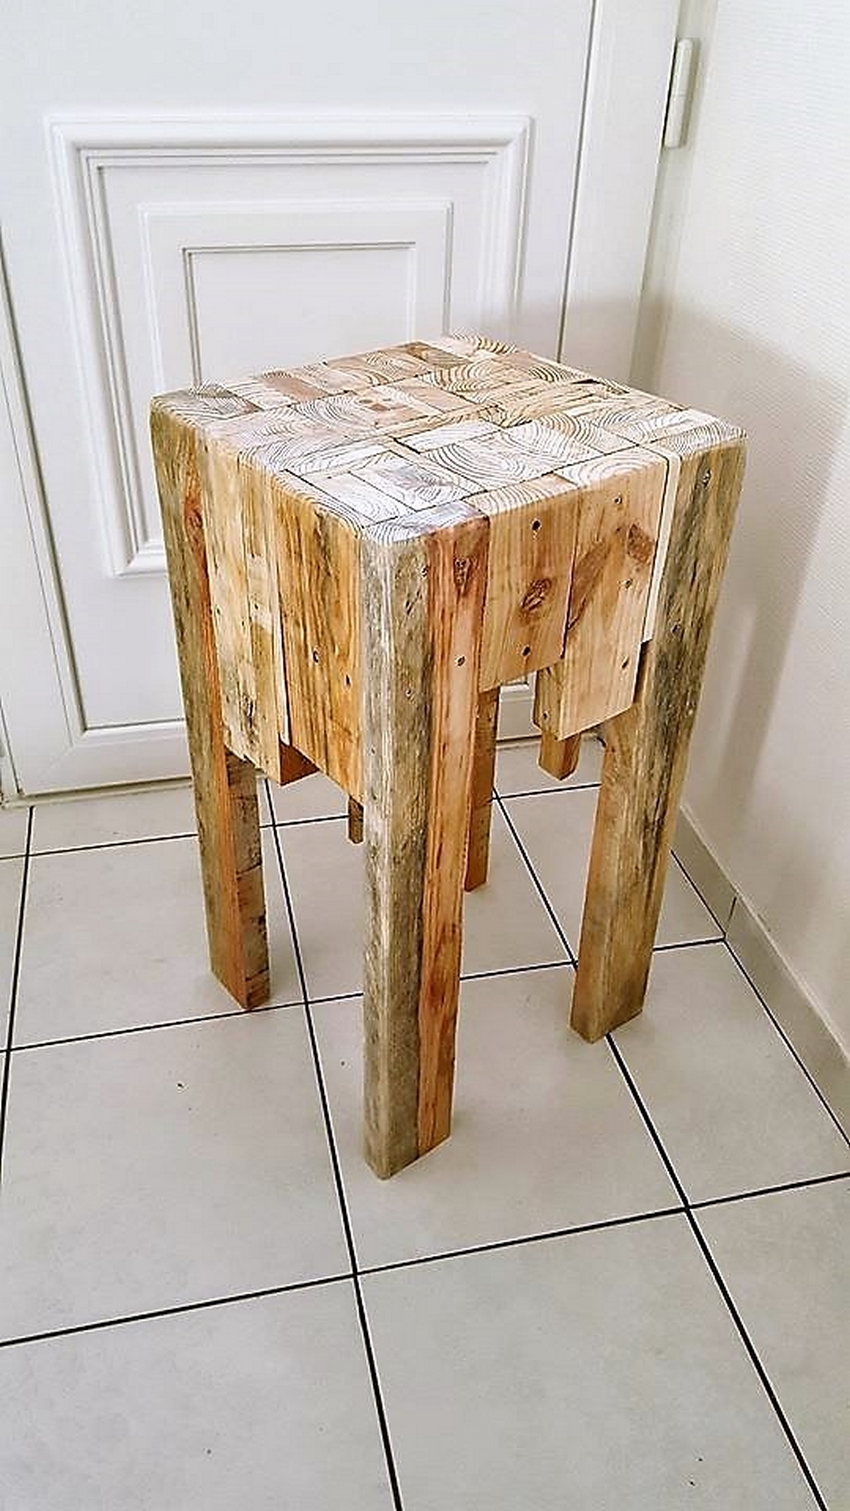 Recycling ideas for wooden pallets pallet ideas - Recycler des palettes ...